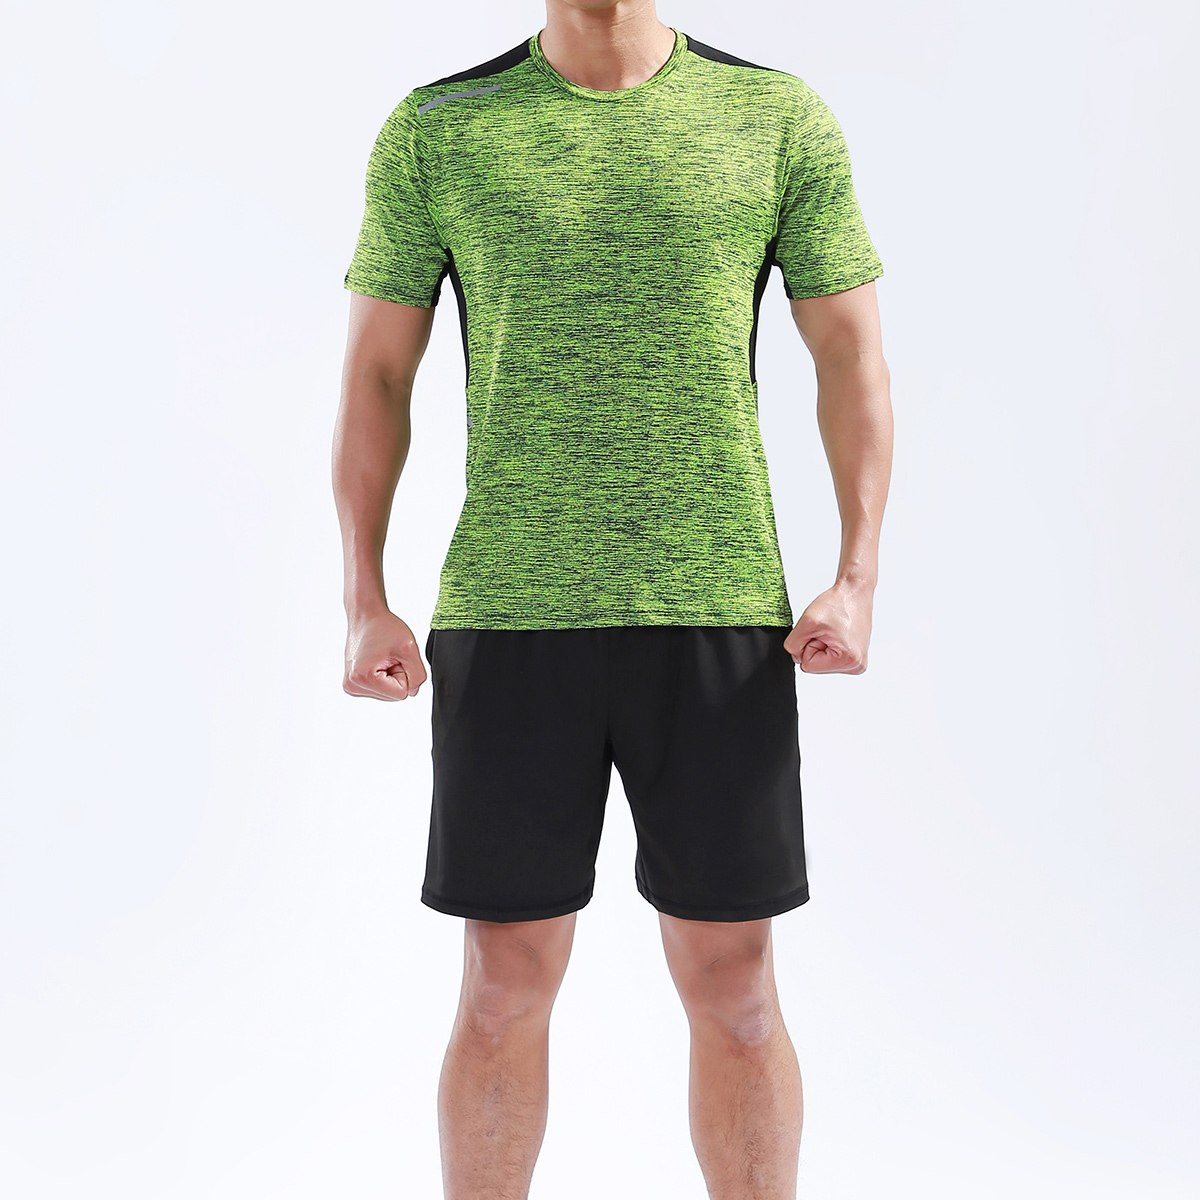 Mens Top & Shorts Fitness